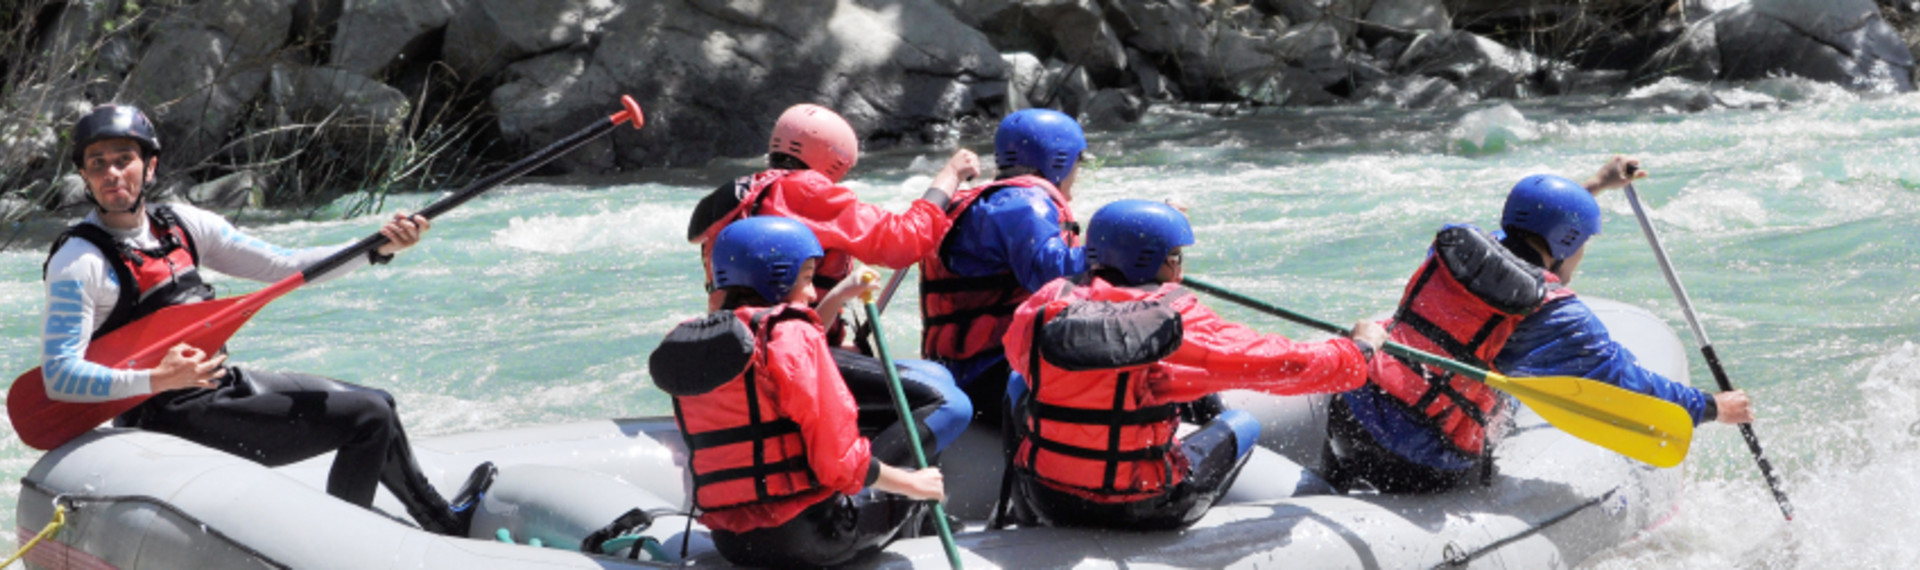 White Water Rafting Wroclaw | Pissup Tours